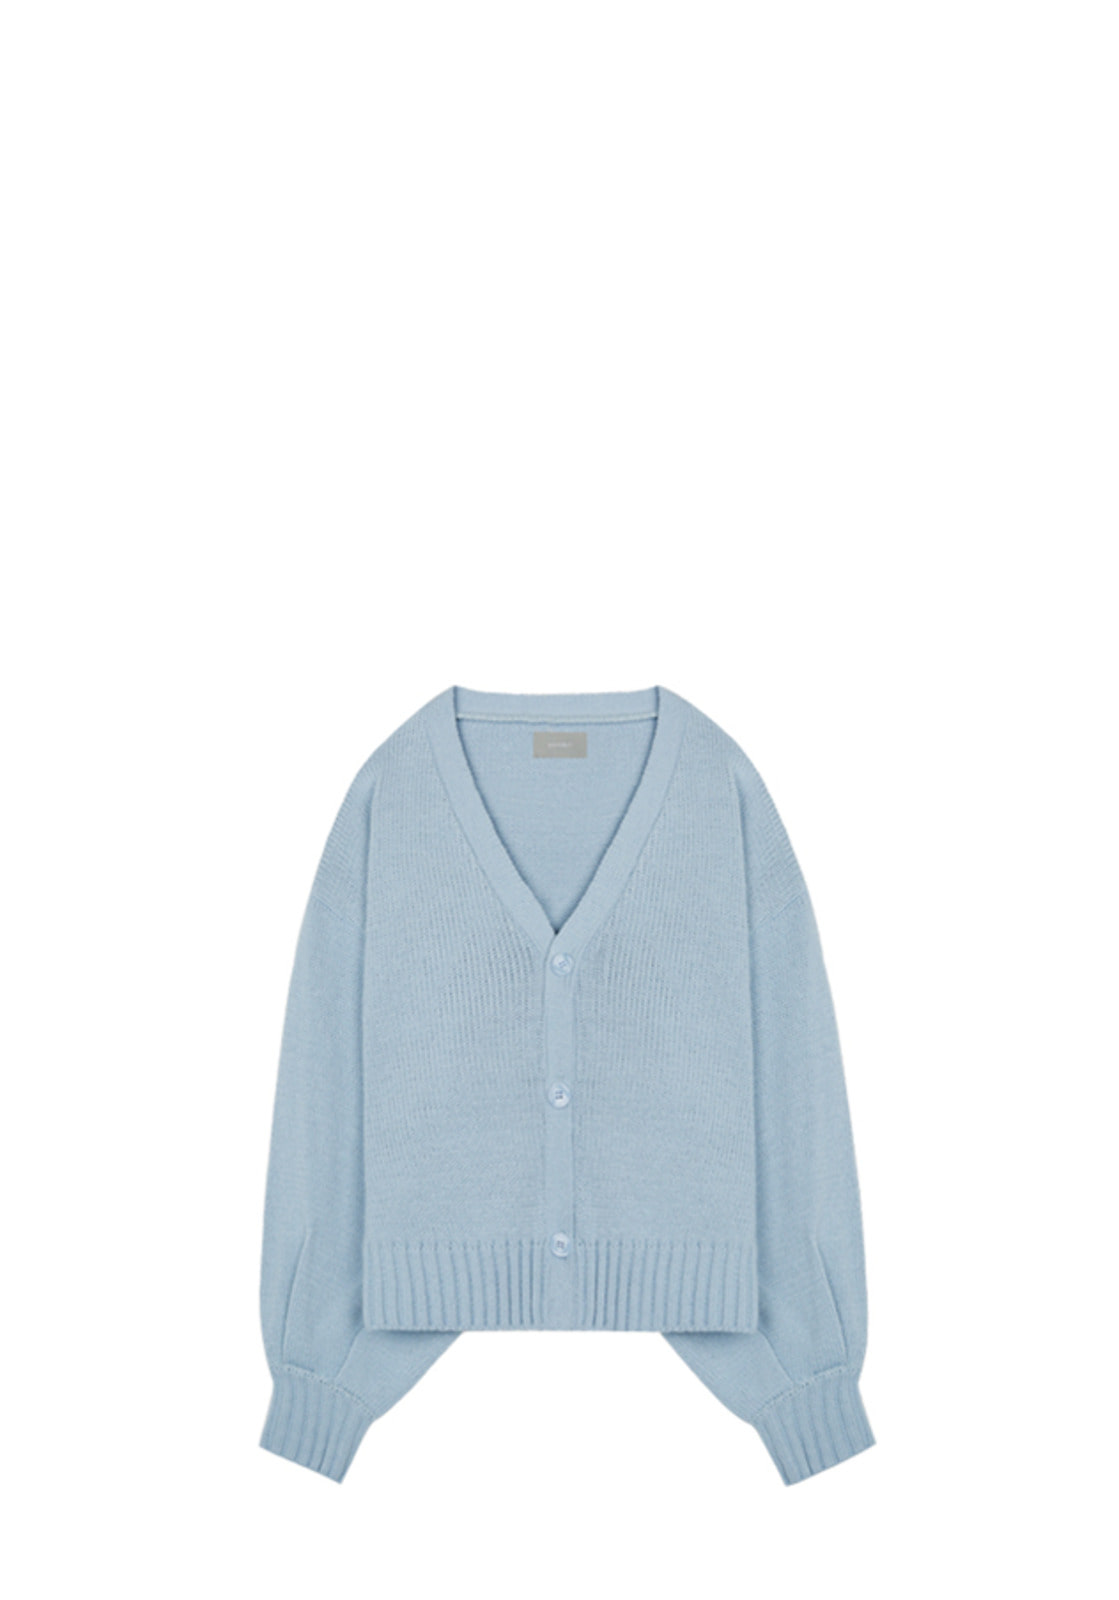 V534 BALLOON KNIT CARDIGAN  SKYBLUE